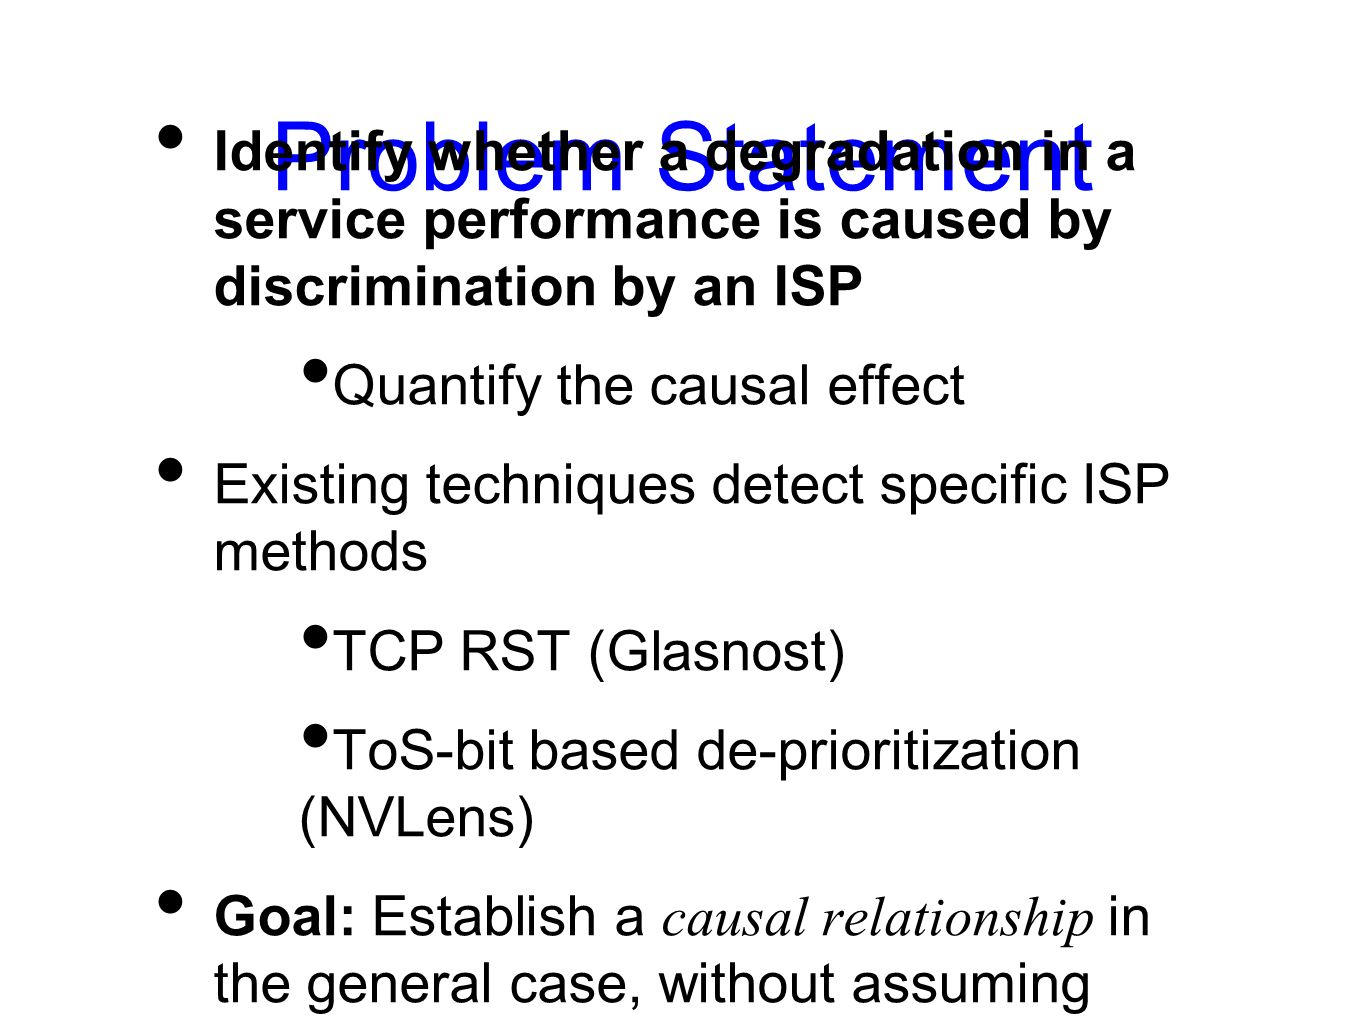 Problem Statement Identify whether a degradation in a service performance is caused by discrimination by an ISP Quantify the causal effect Existing techniques detect specific ISP methods TCP RST (Glasnost) ToS-bit based de-prioritization (NVLens) Goal: Establish a causal relationship in the general case, without assuming anything about the ISPs methods